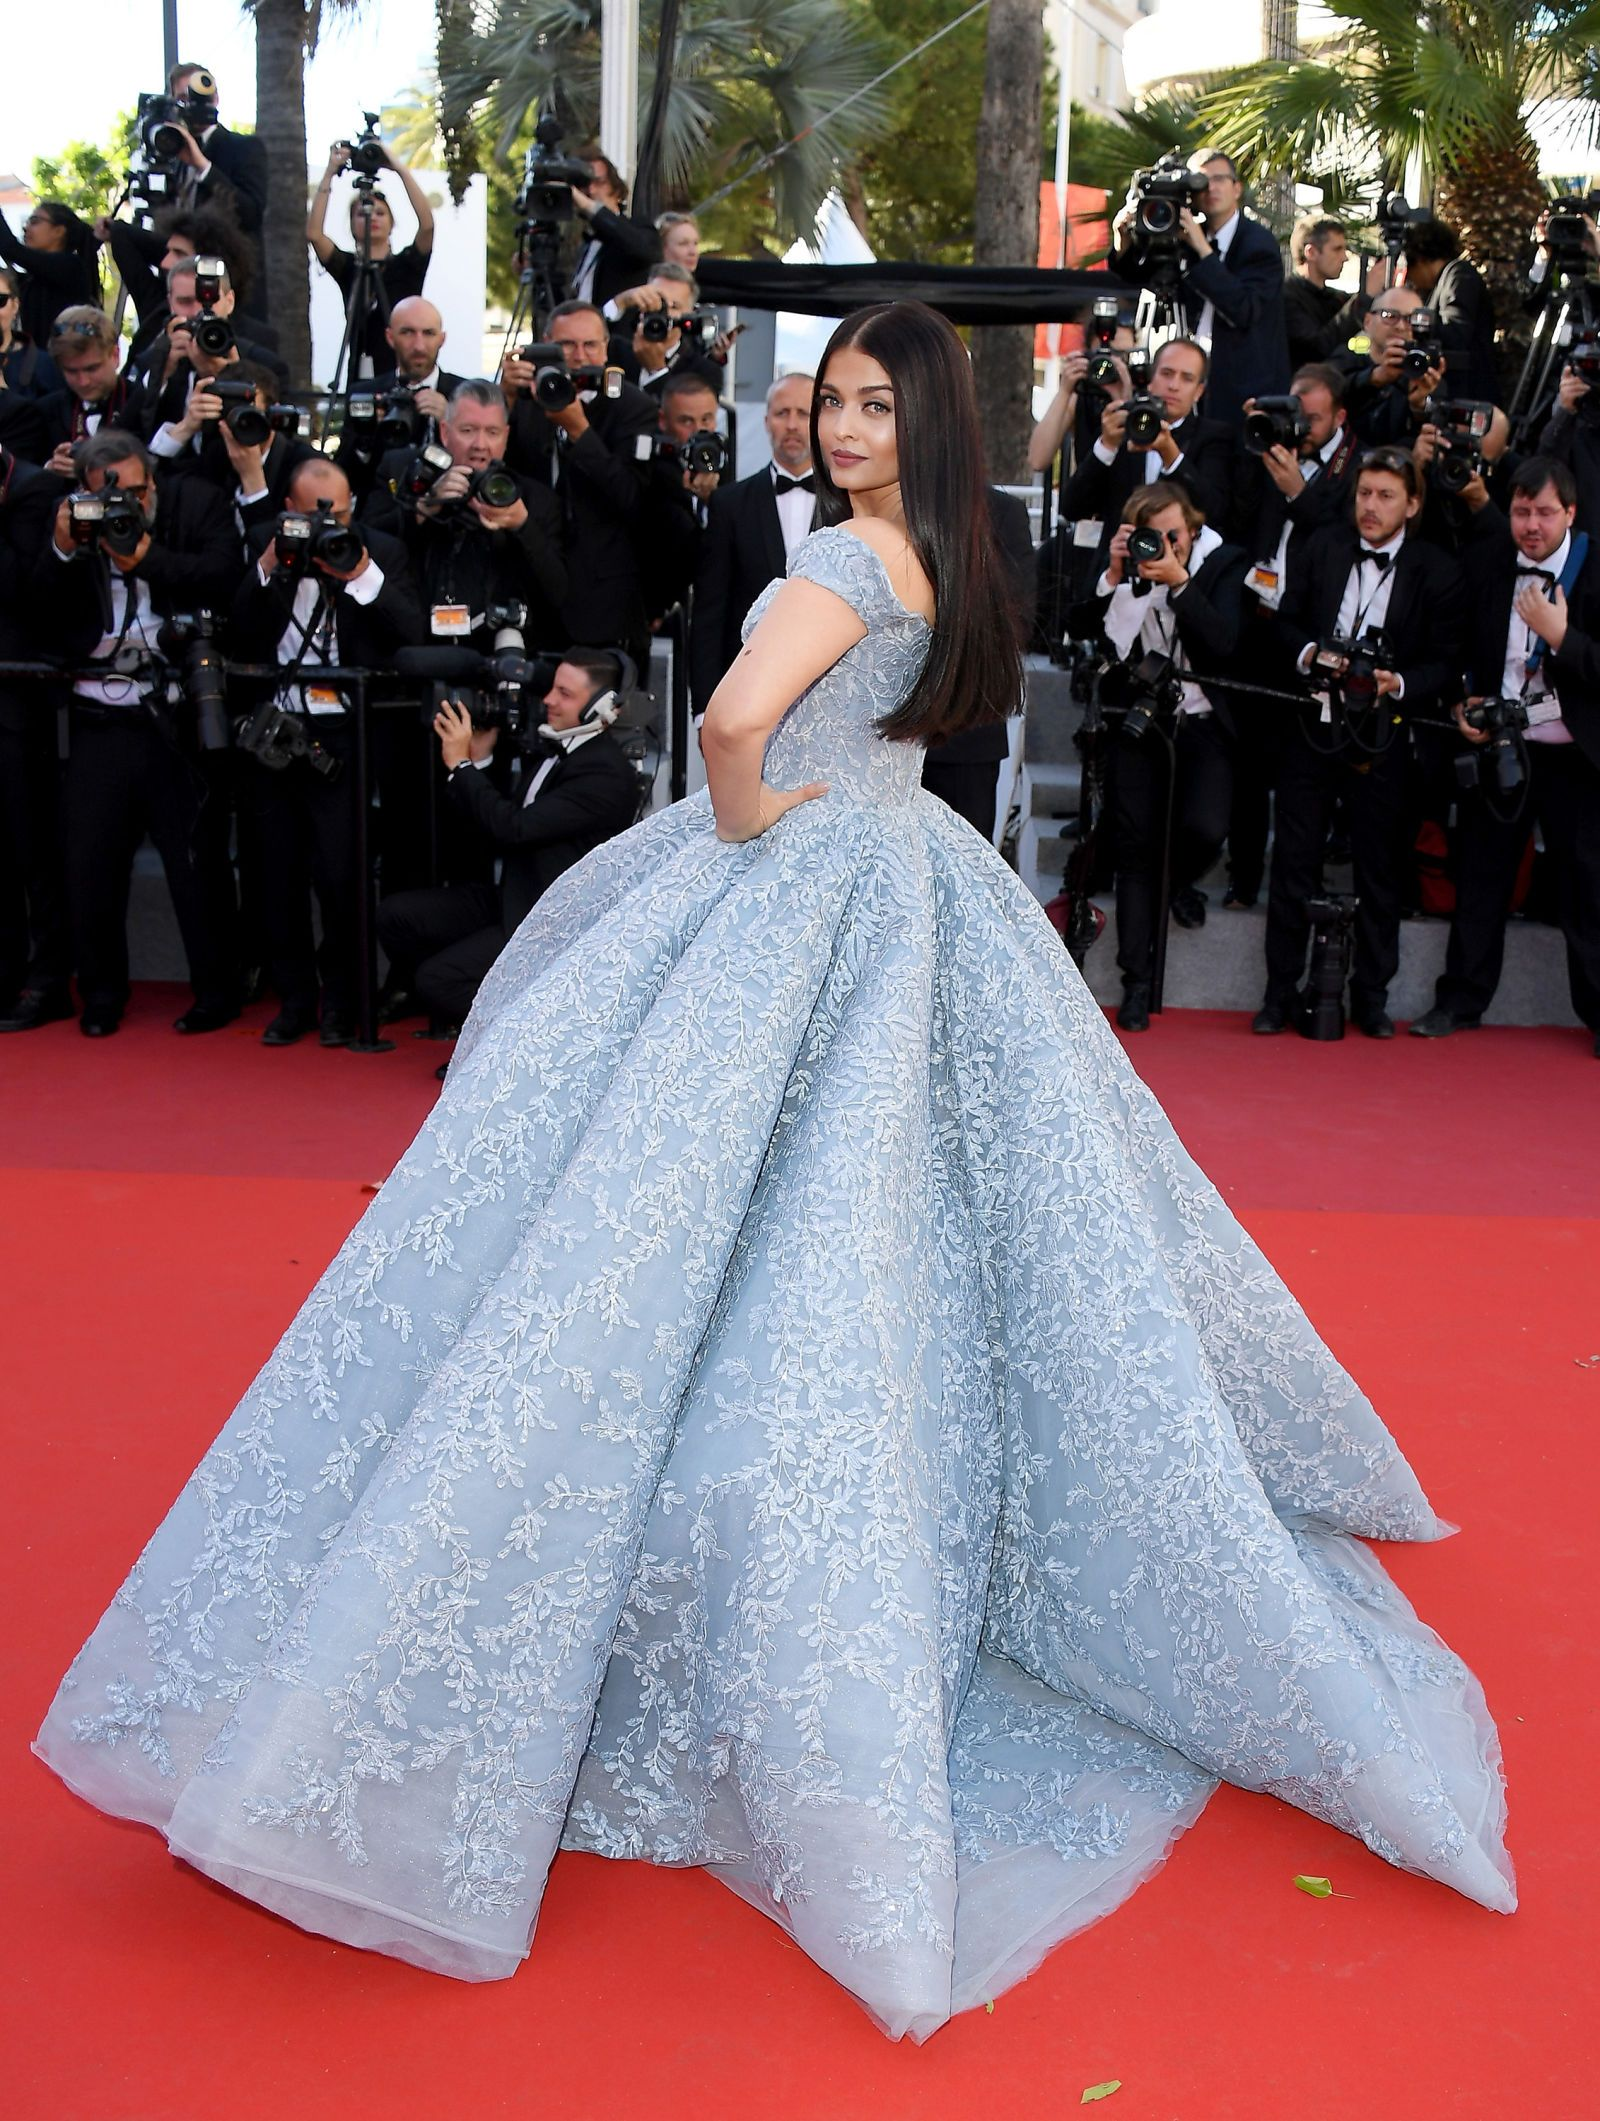 554f0cabda This Real-Life Cinderella Dress Just Won the Cannes Red Carpet ...